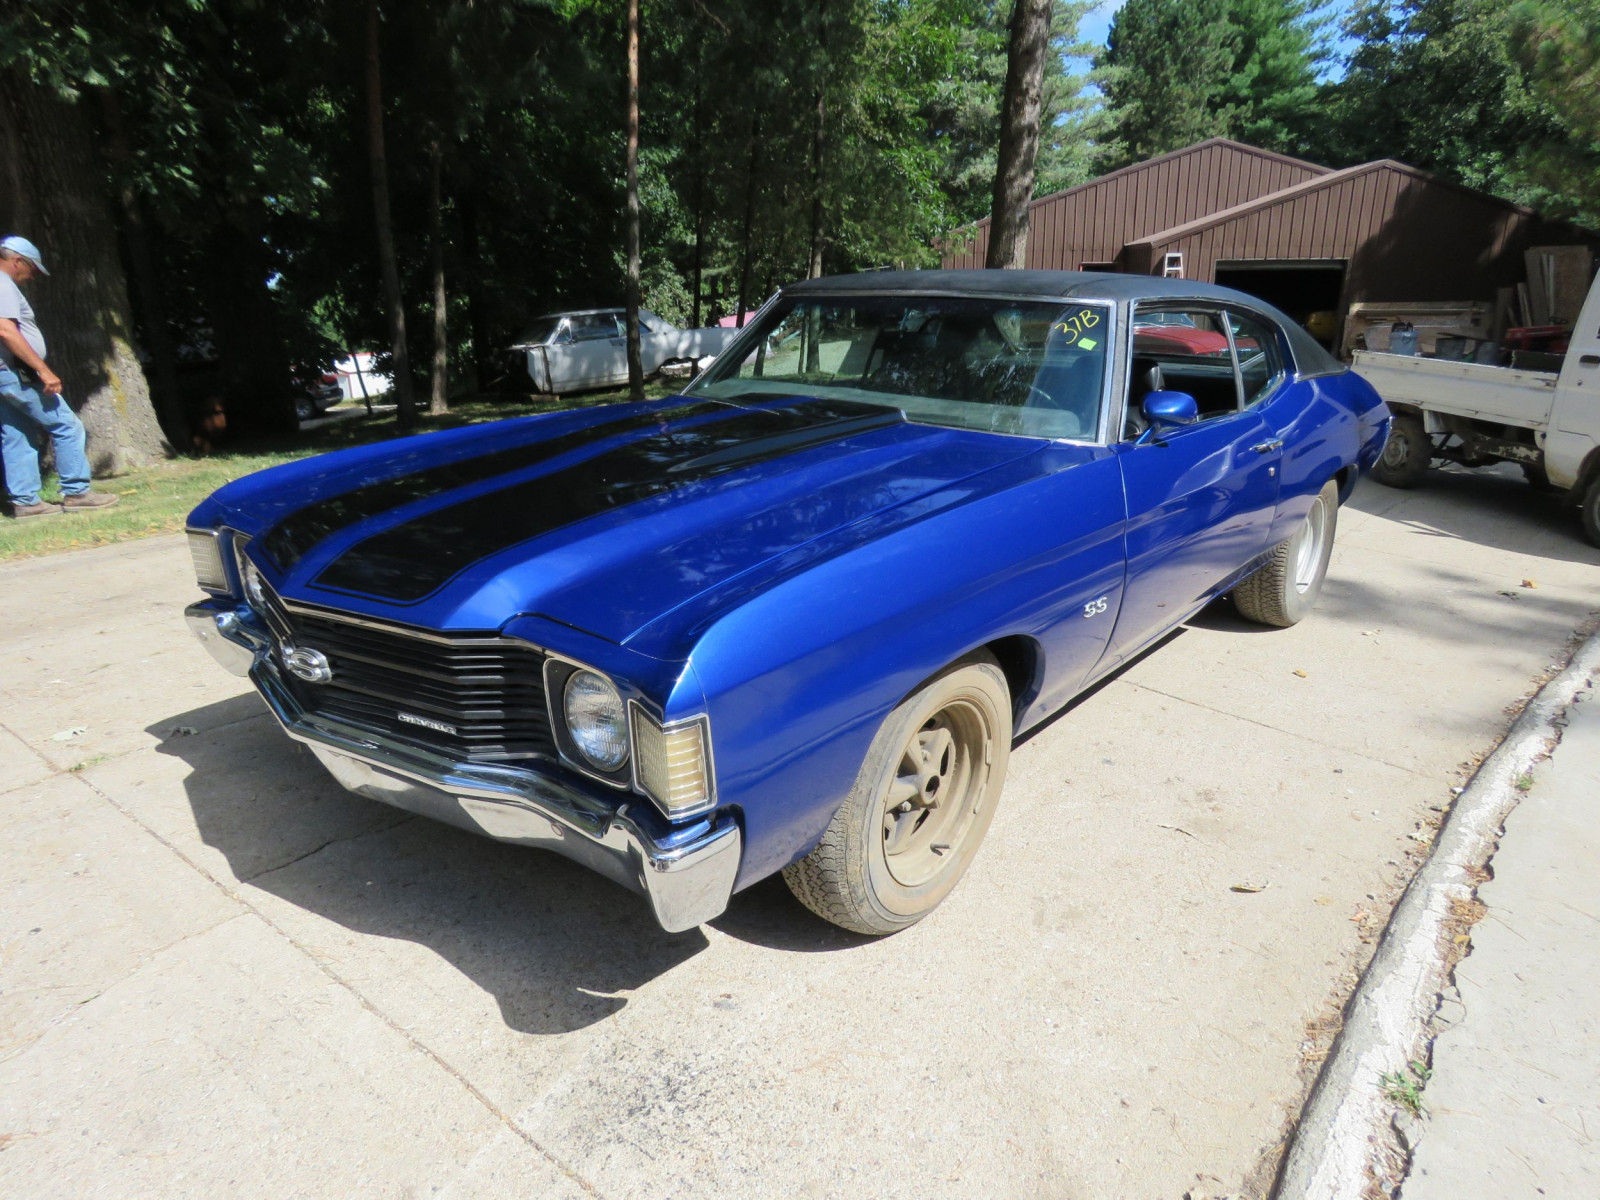 1972 Chevrolet Chevelle SS 2dr HT - Image 1